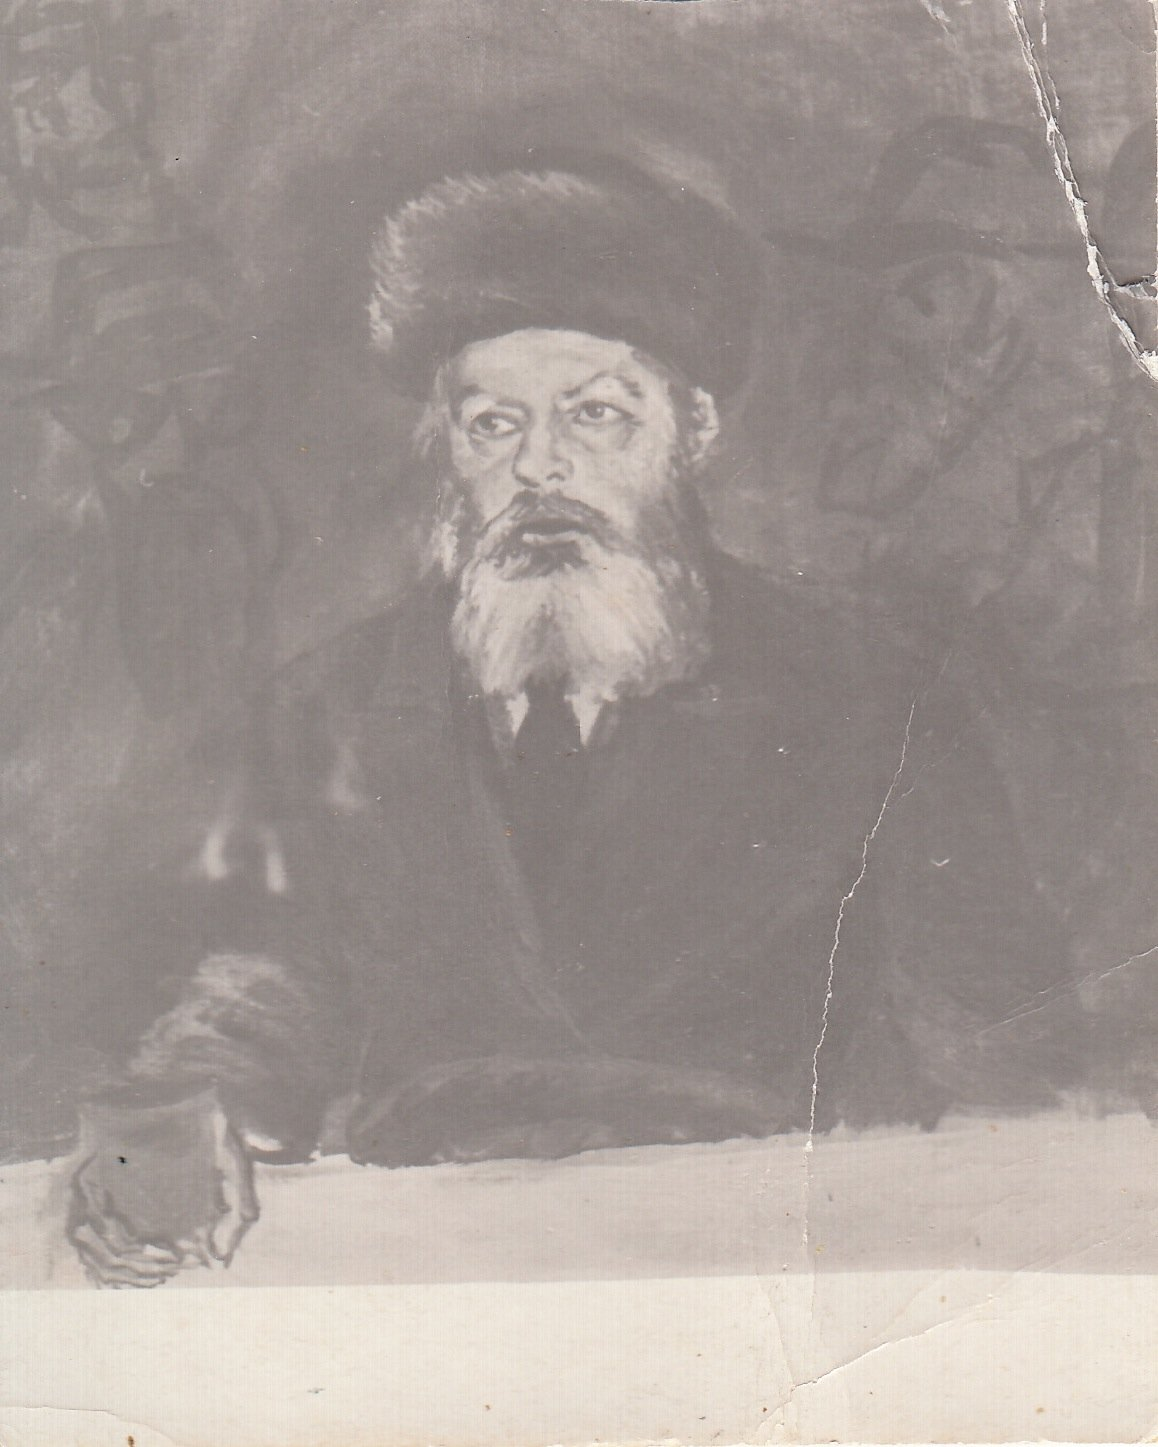 Photo of a painting of Rabbi Menachem Mendel Schneerson, the 7th Lubavitcher Rebbe.